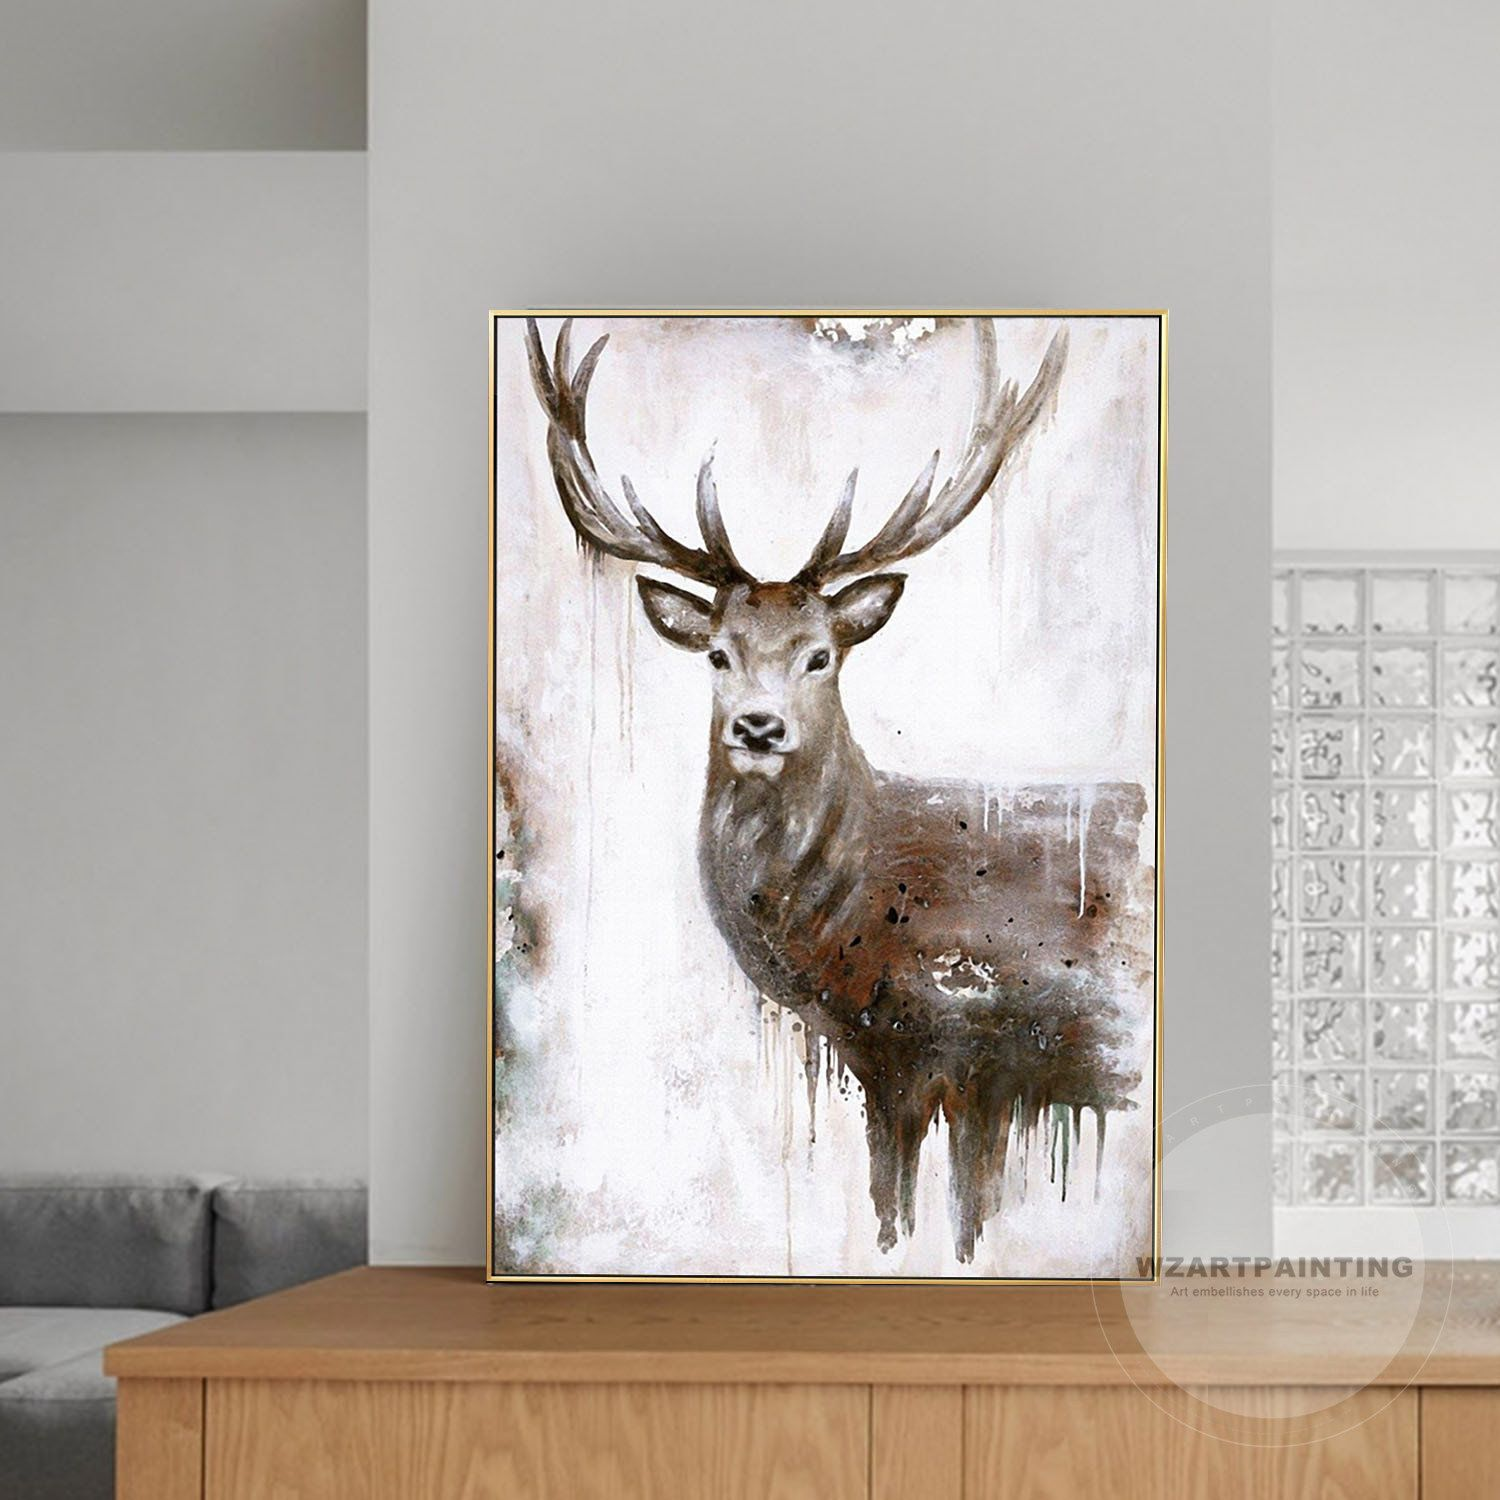 Framed Wall Art Deer Animal Print Painting Digital Prints Etsy Deer Painting Art Framed Wall Art